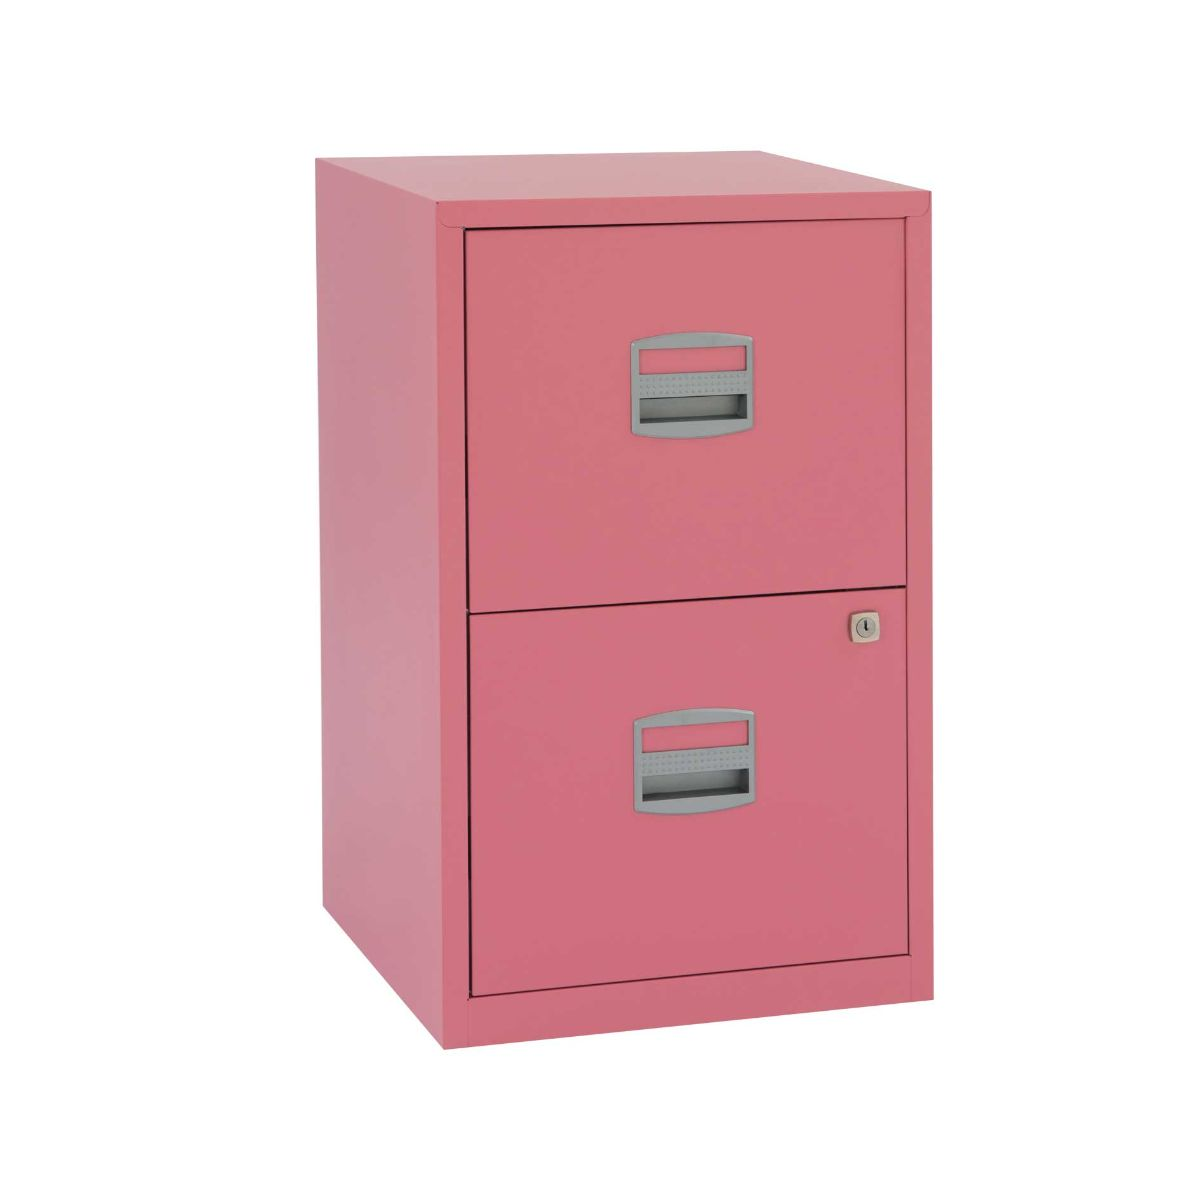 Filing Cabinets Storage & Shelving Furniture & Storage - Ryman